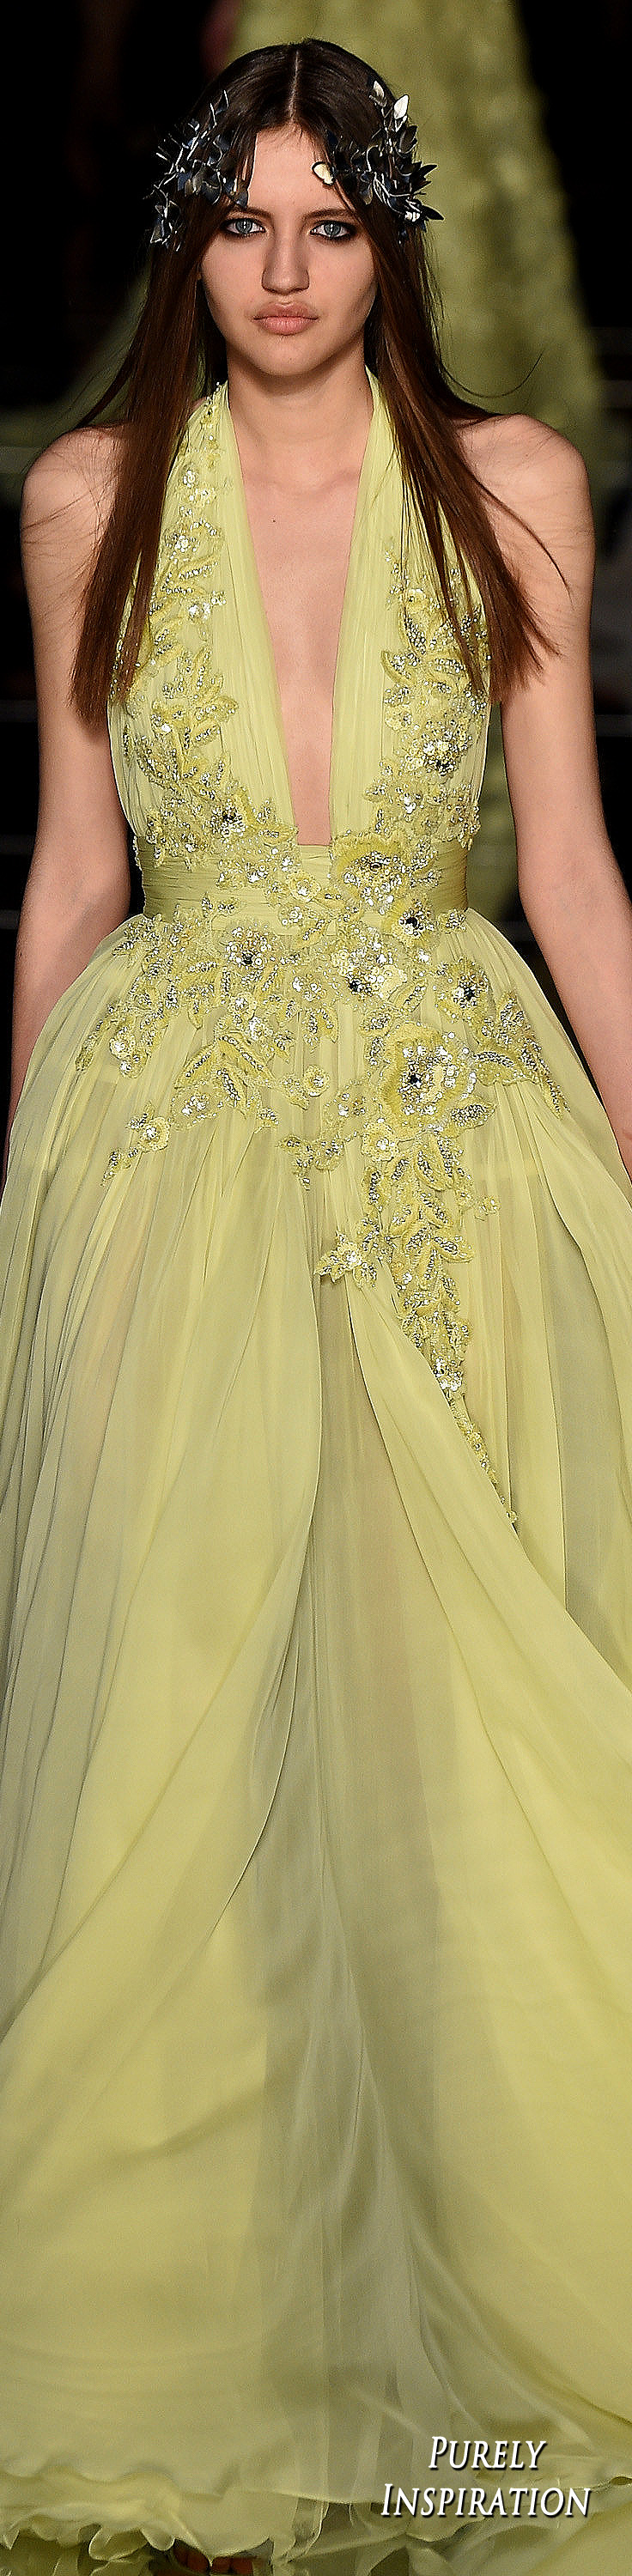 Zuhair Murad Spring 2016 Haute Couture | Purely Inspiration